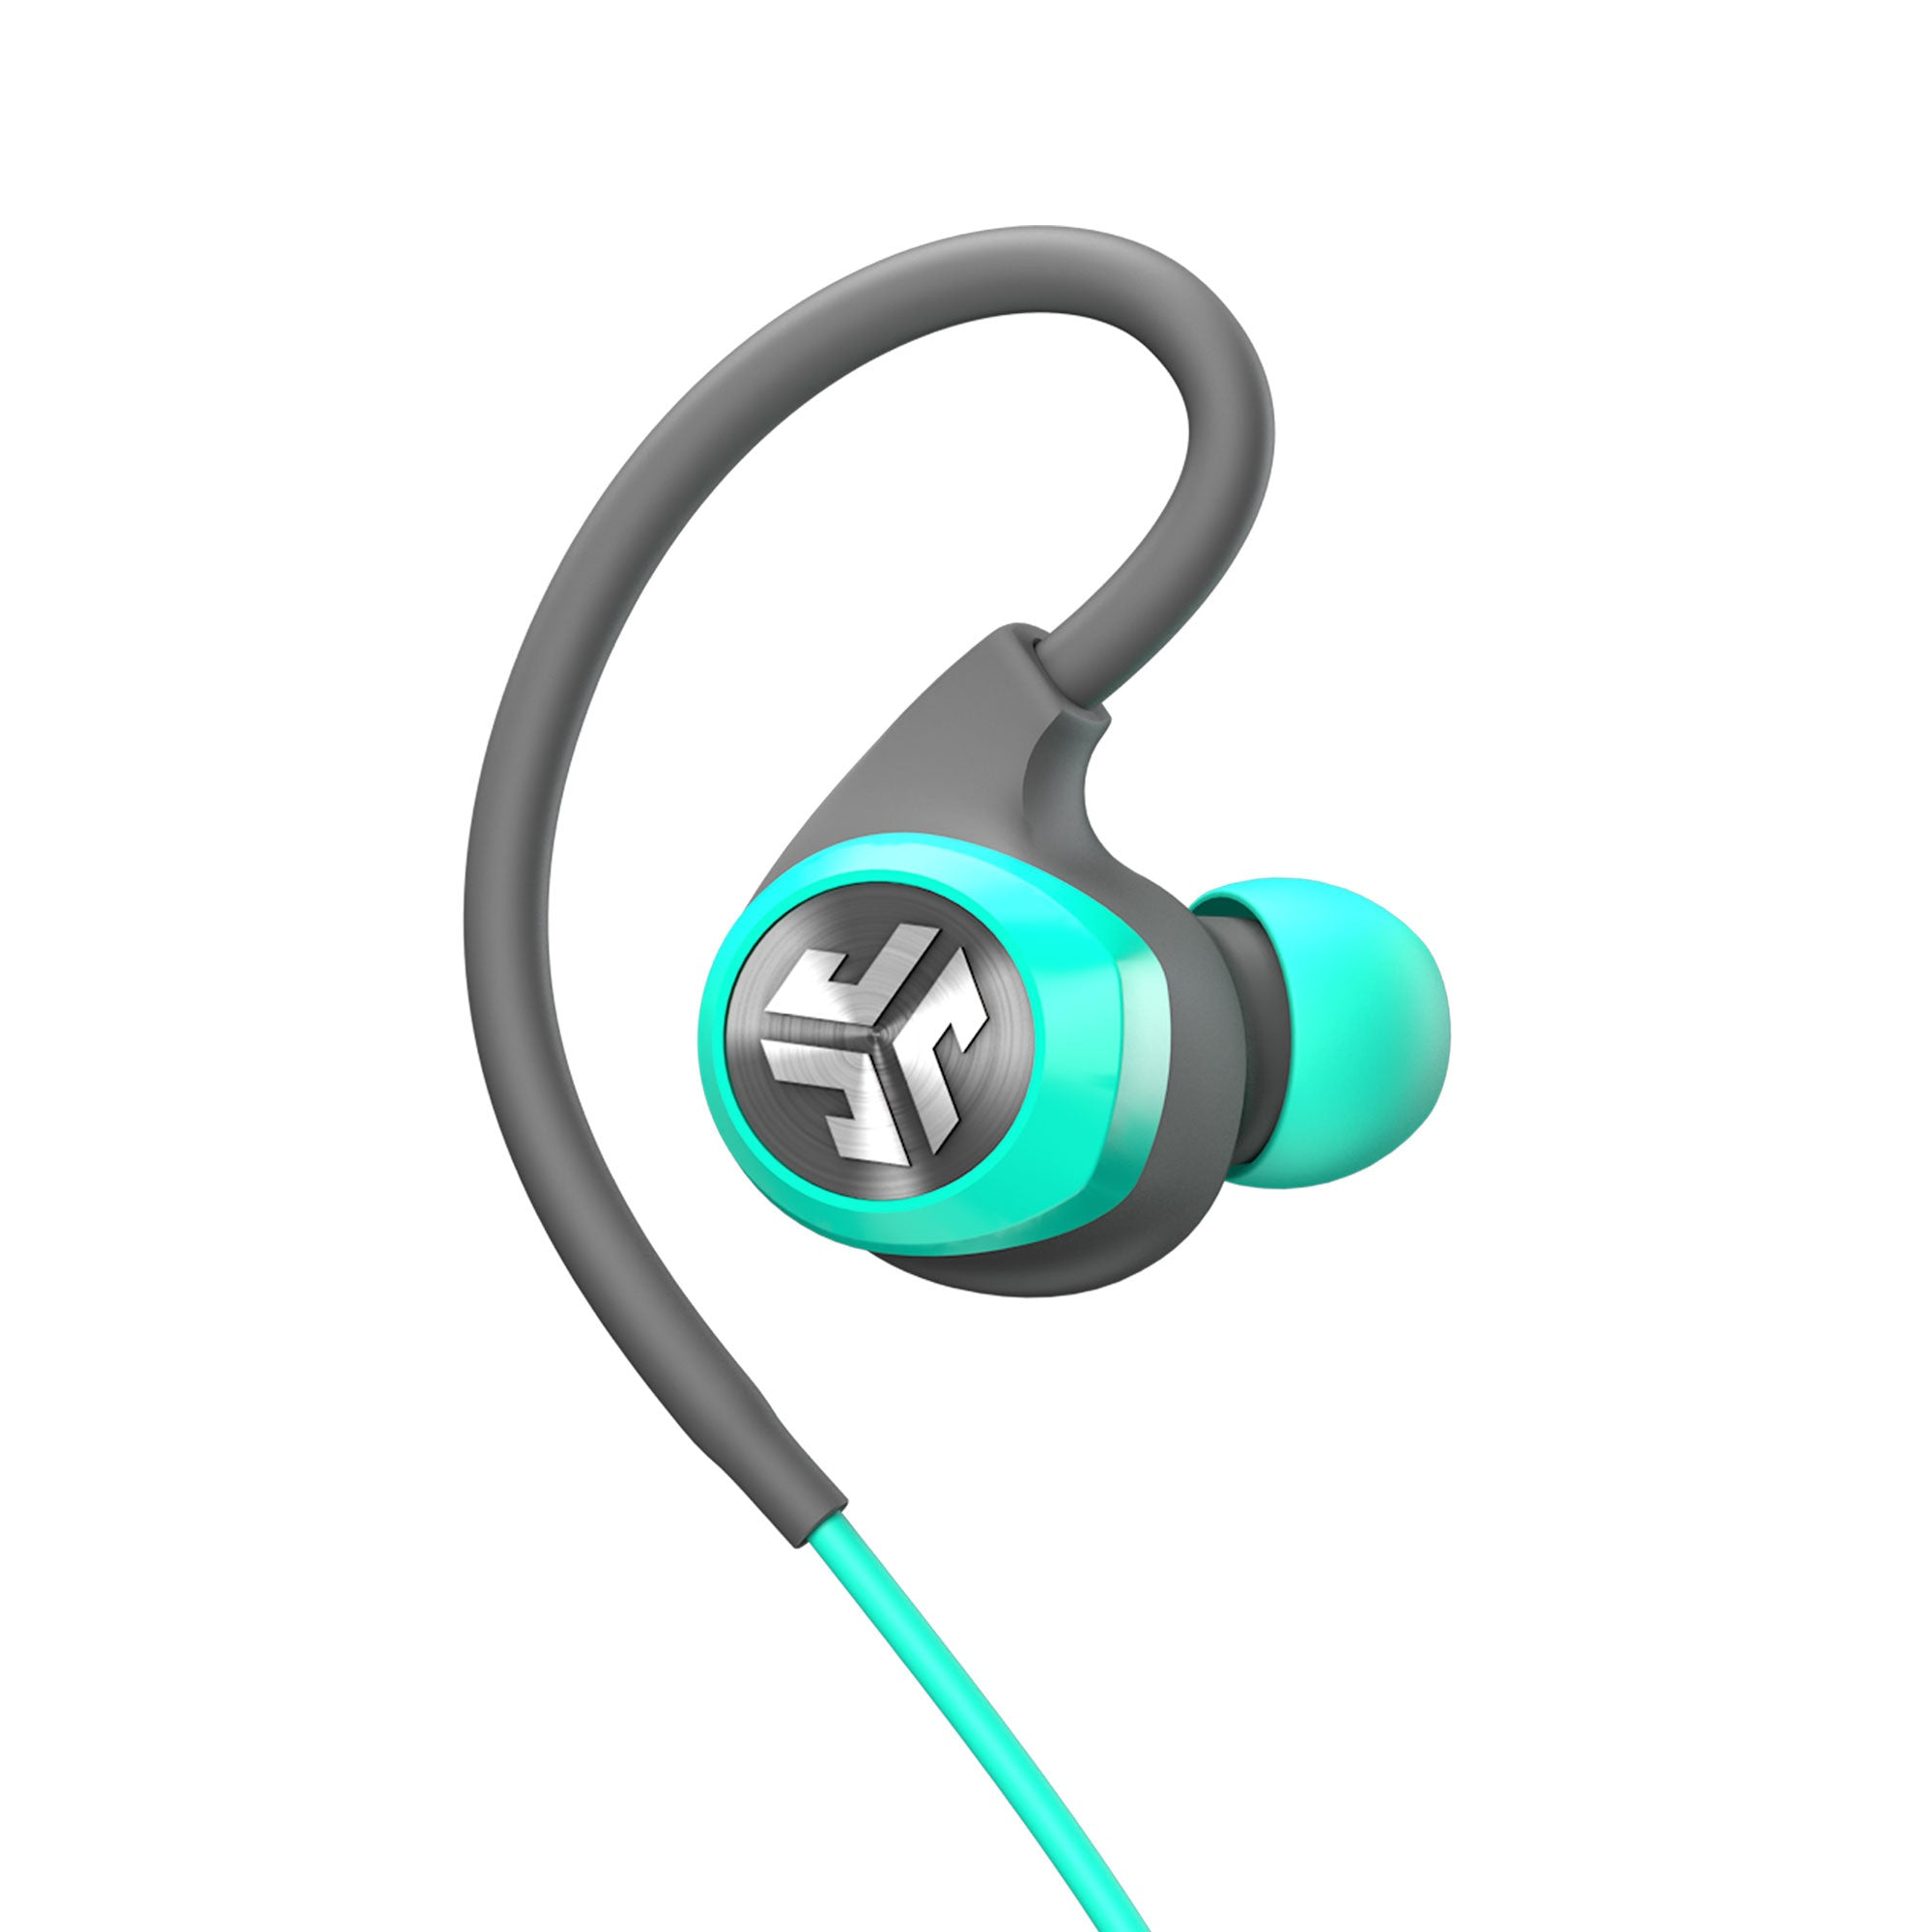 Apple earbuds wireless color - teal apple earbuds - Coupon For Amazon